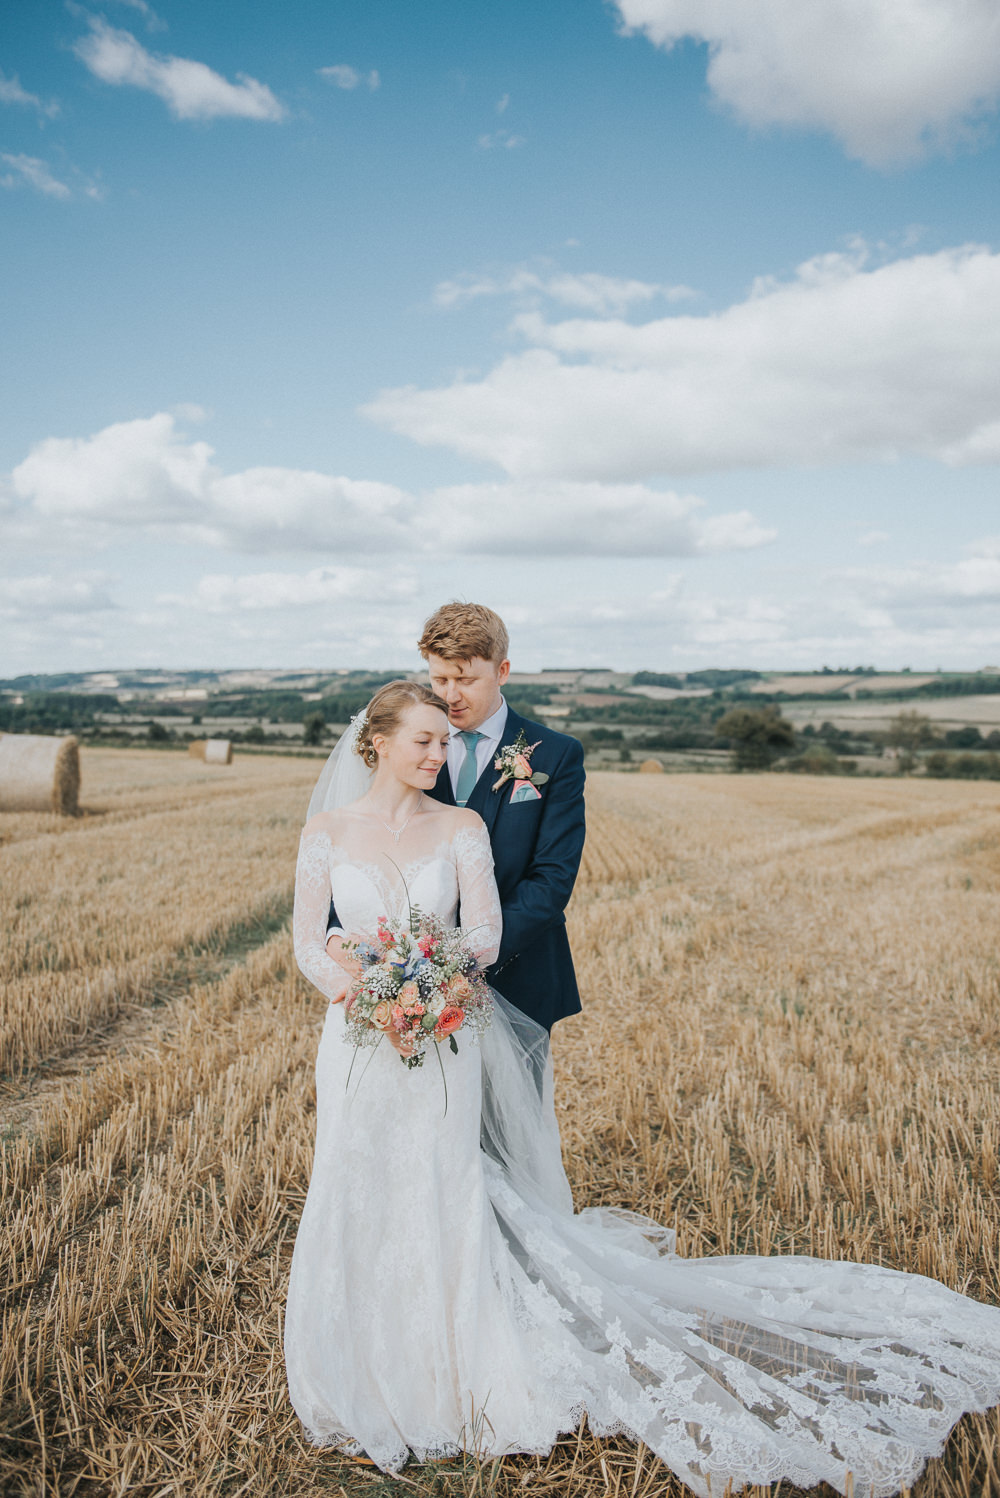 Lace Dress Gown Bride Bridal Sleeves Buttons Illusion Plunge Long Fit Flare Train Veil Countryside Wedding Cotswolds Kate Waters Photography